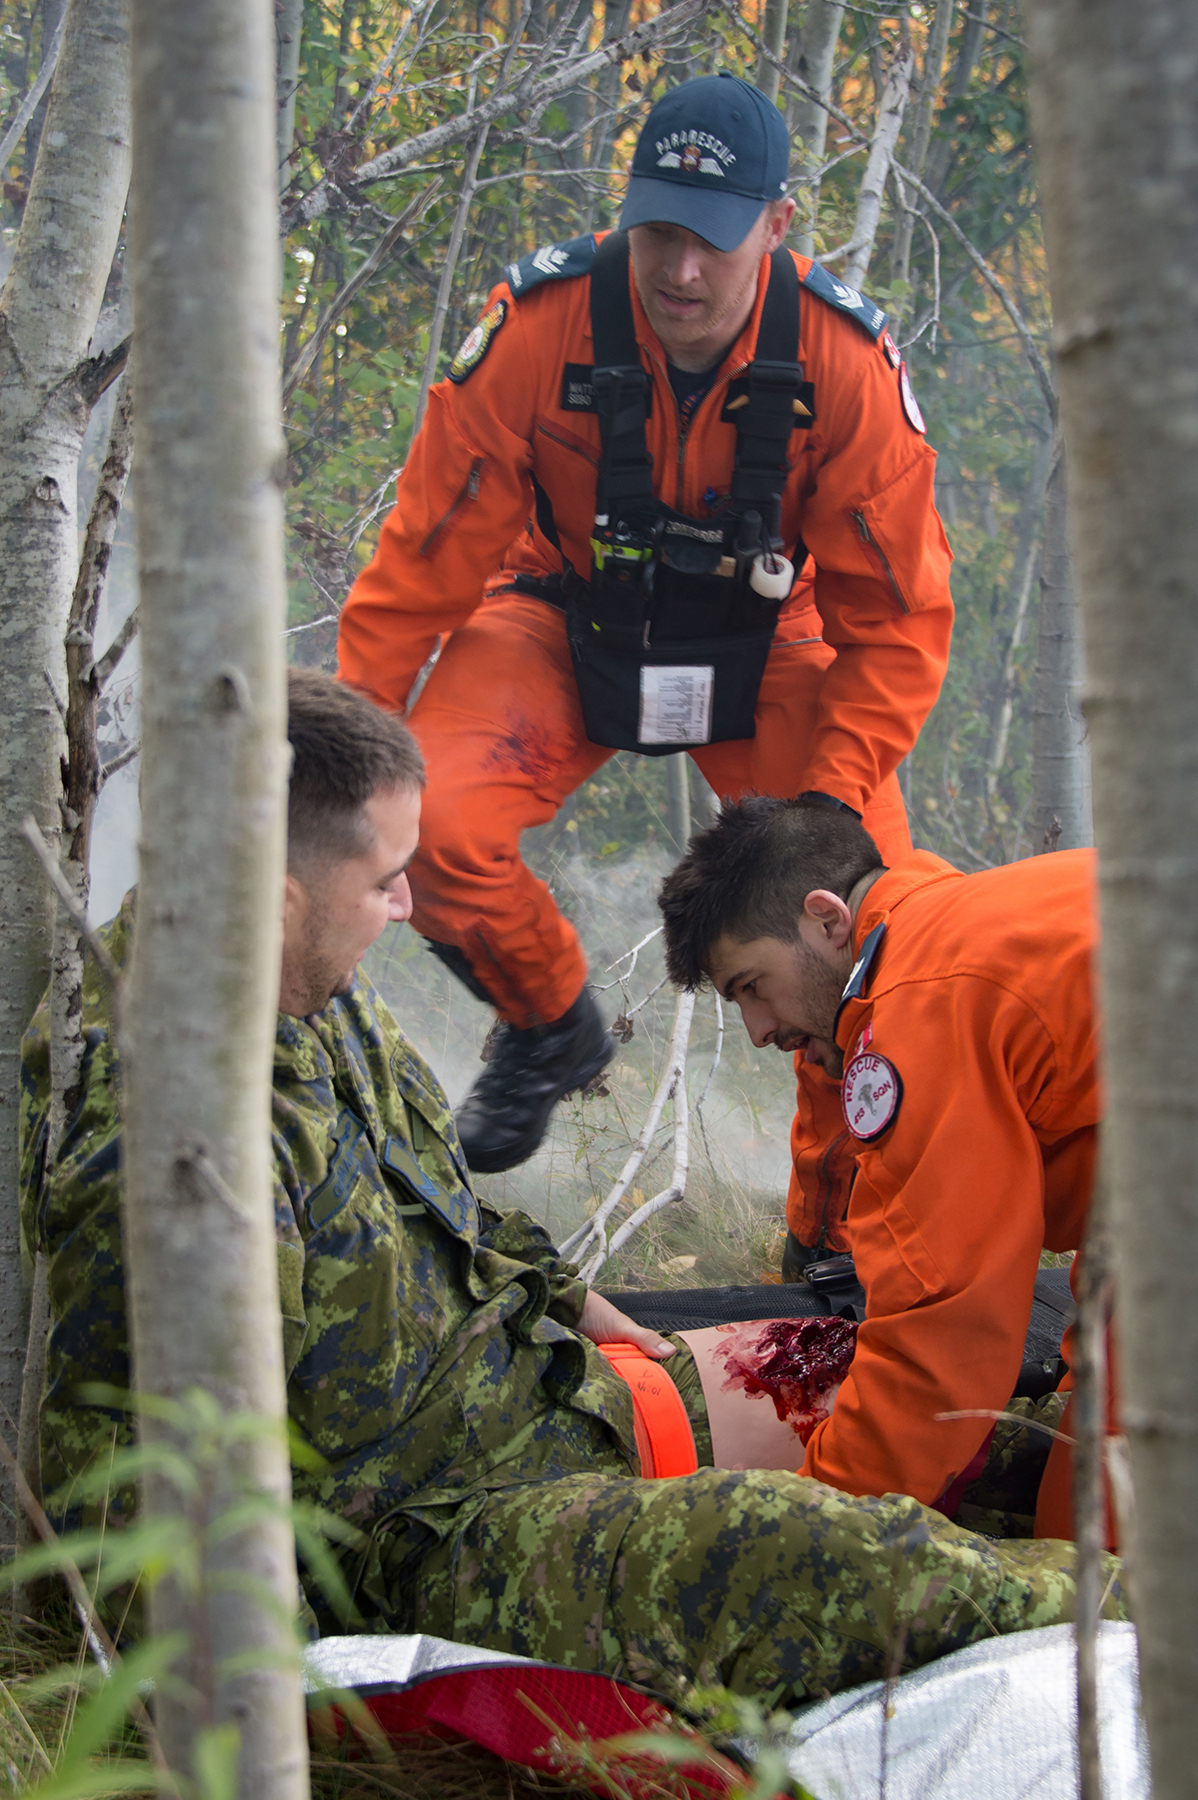 gd10-2018-0688-149-tuskerex-thigh3 Search and rescue technicians Master Corporal Gabriel Ferland (right) and Master Corporal Matthew Sebo tend to Corporal Jean-Luc Germain, a volunteer victim in an aircraft crash scenario during 413 Transport and Rescue Squadron's search and rescue exercise on October 5, 2018, held at 14 Wing Greenwood, Nova Scotia. PHOTO: Corporal Karen Neate, GD10-2018-0688-149